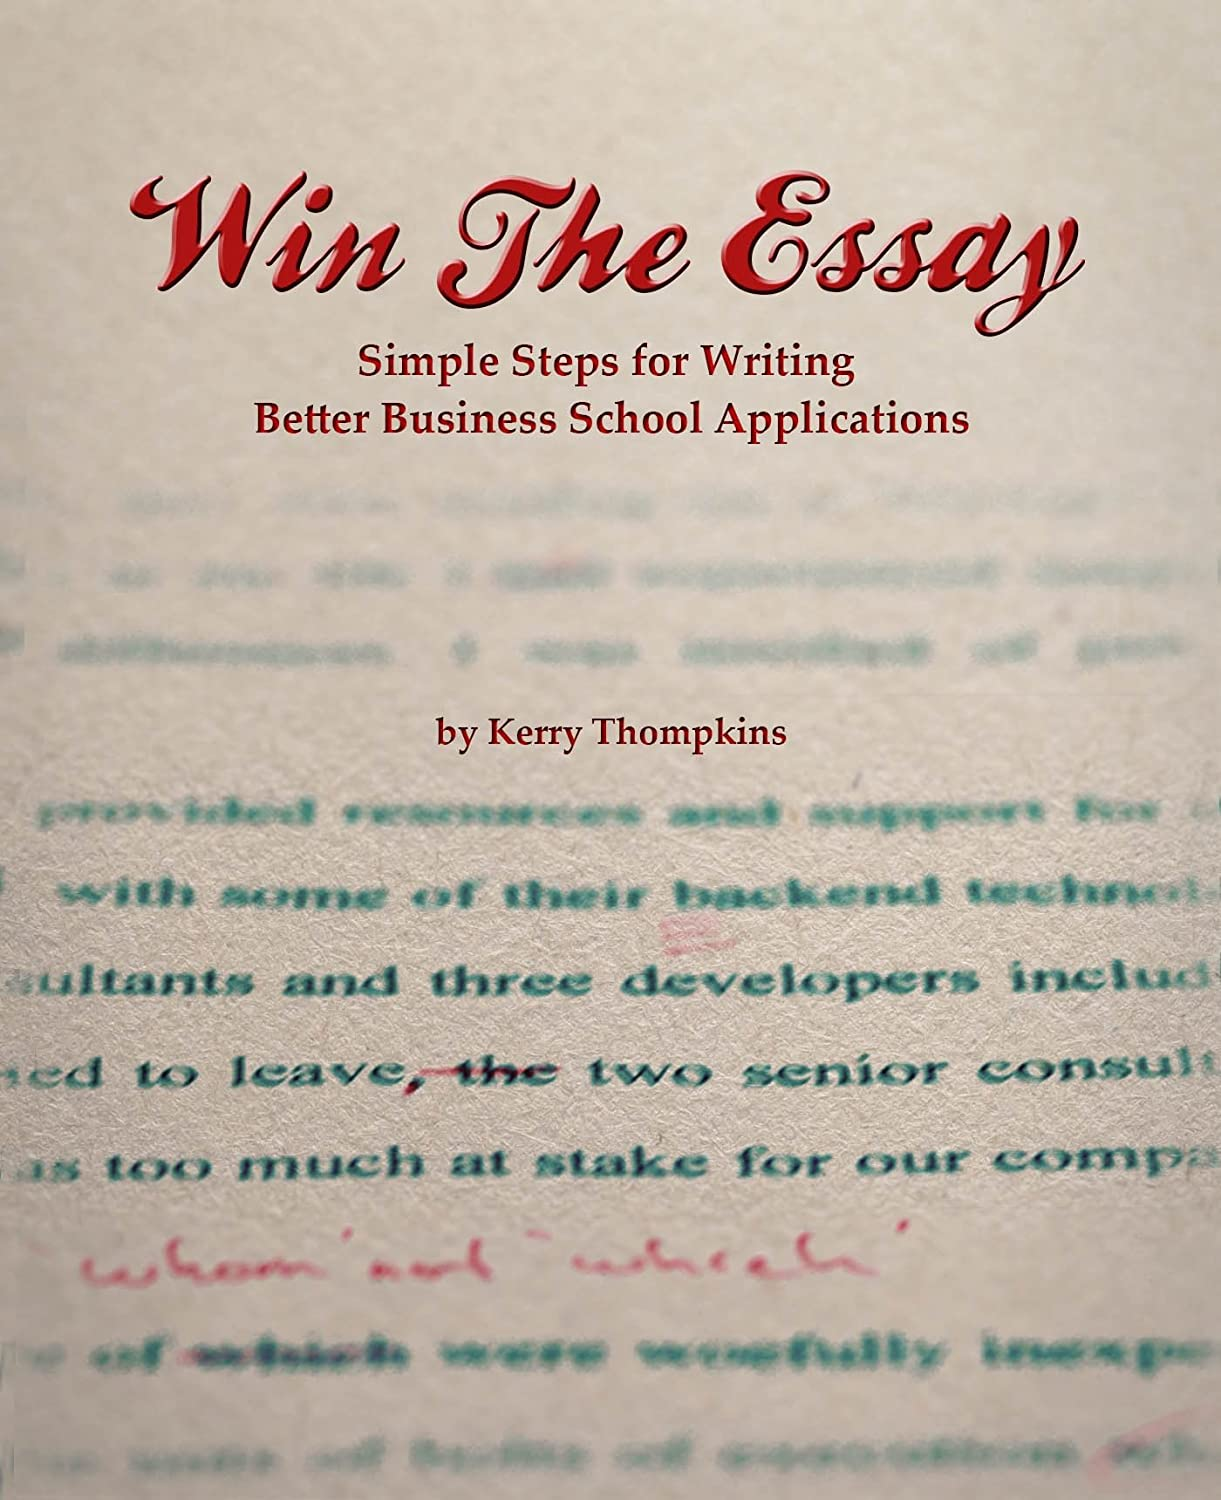 Best Business School Essays I Have Excellent Academic And  Best Business School Essays Business School Admissions Blog Mba Tips For A  Stellar Mba Essay Apply